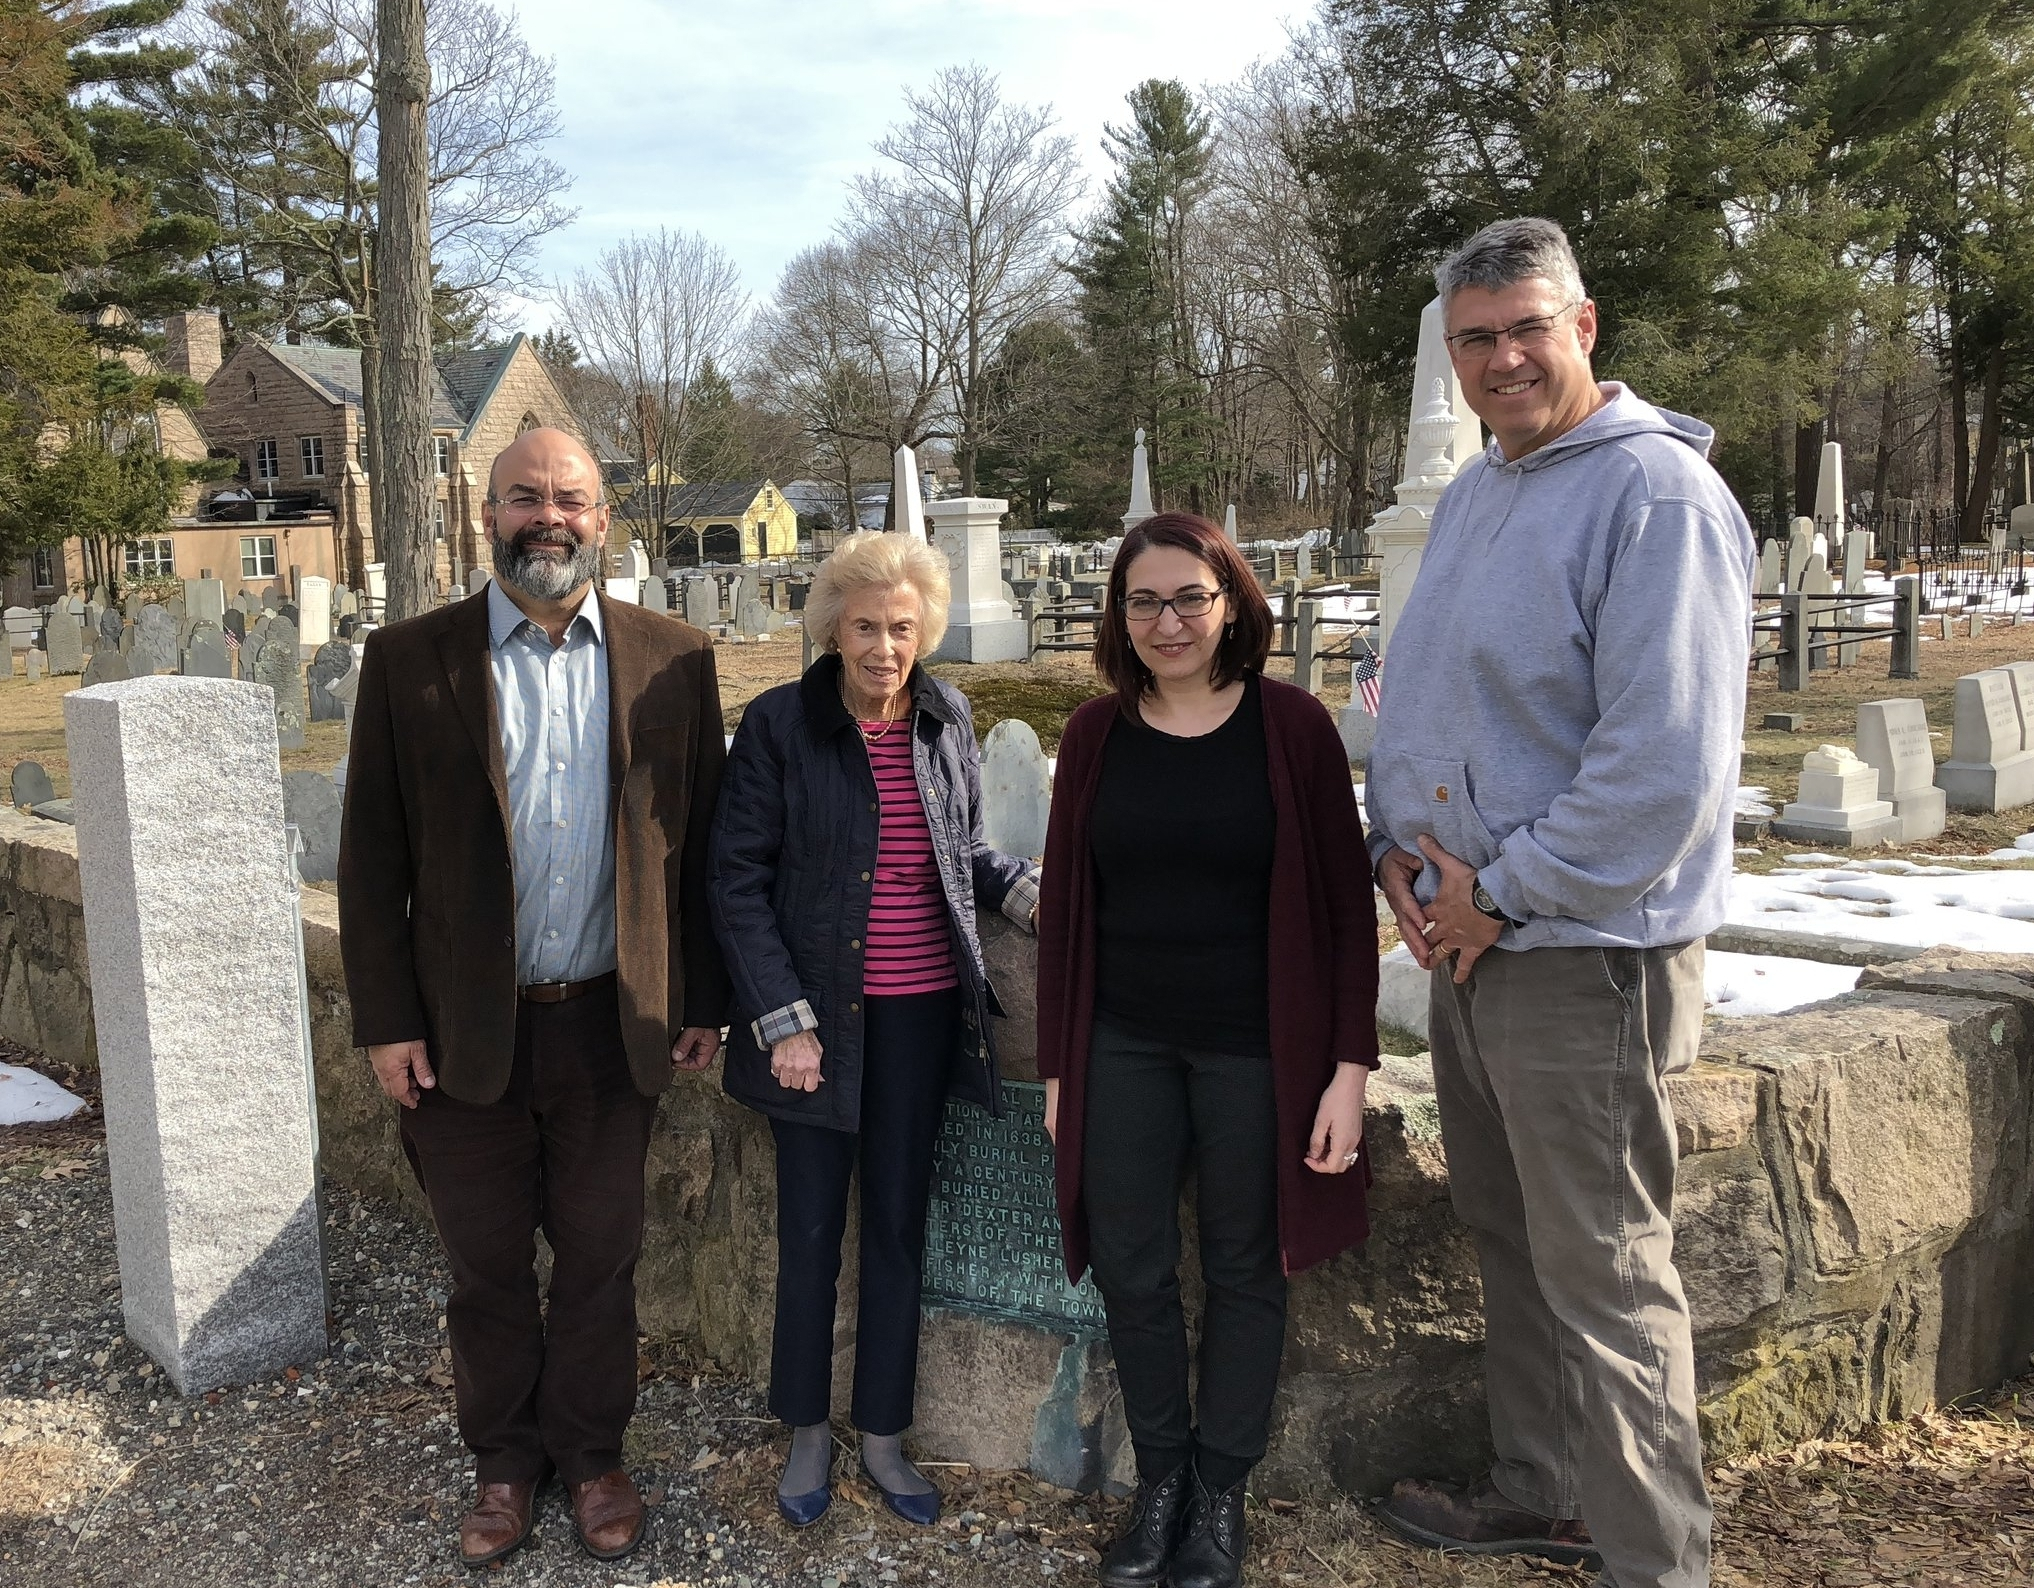 From Left to Right: Ricardo Austrich;former State Representative Marie-Louise Kehoe;Vesna Maneva, and Dedham DPW Director Joseph Flanagan